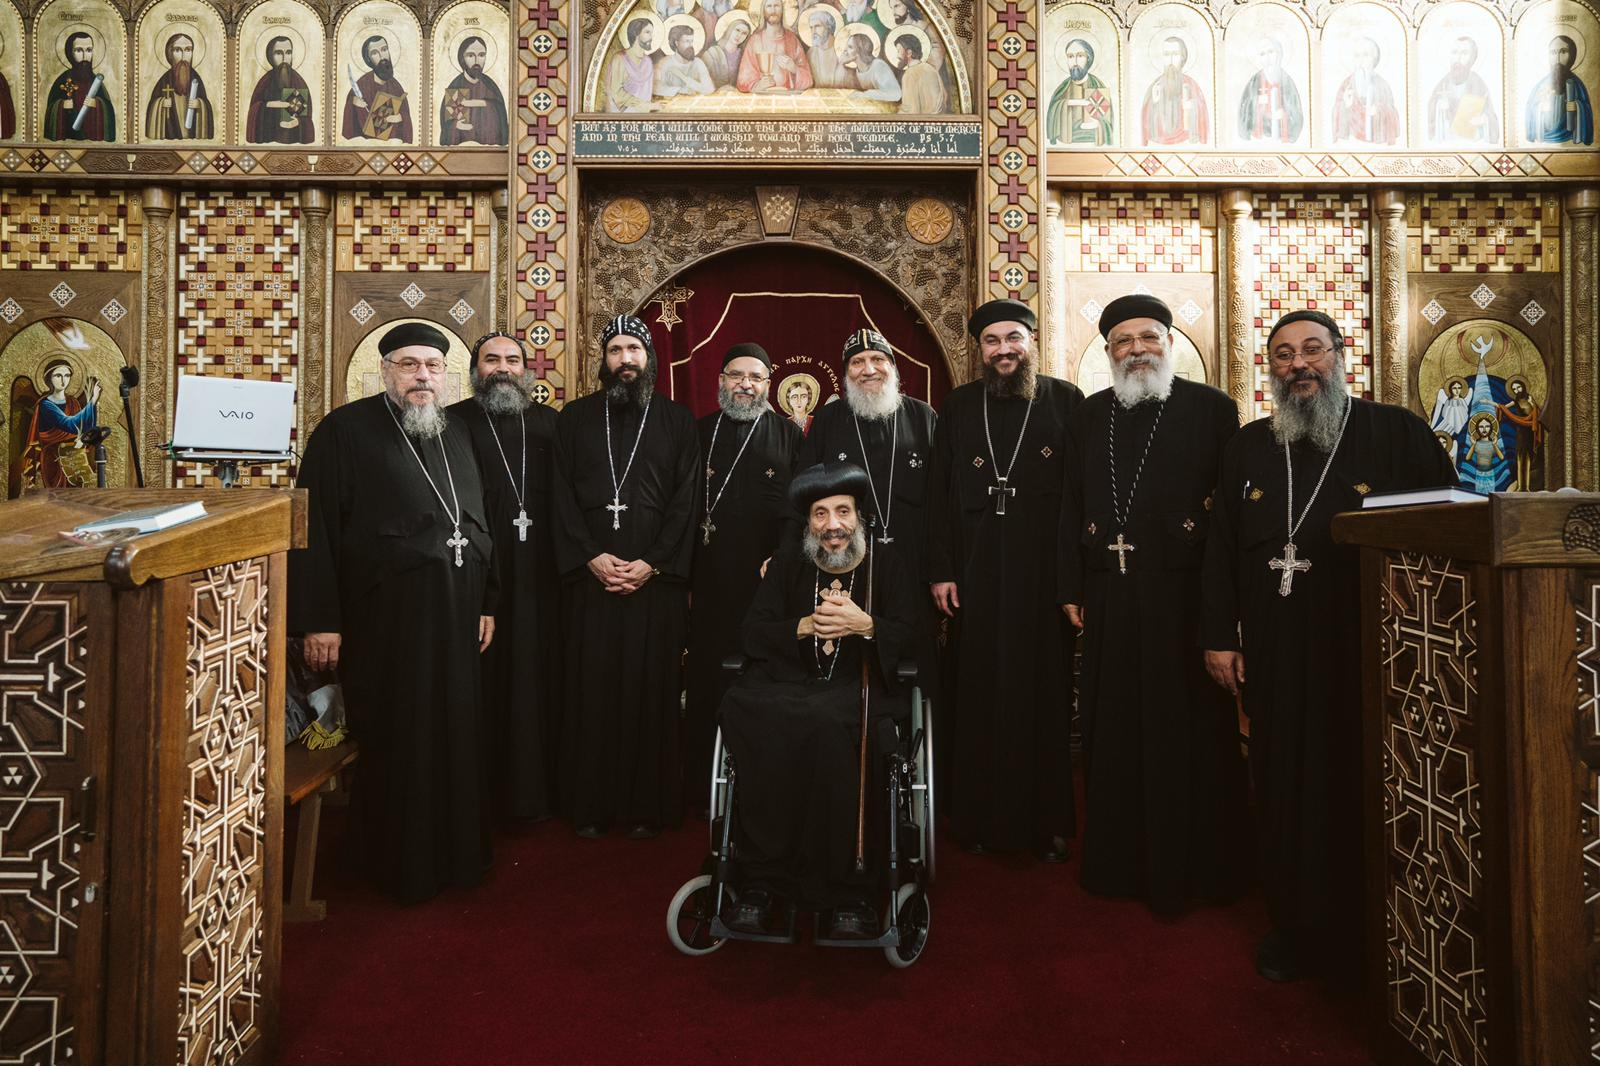 The-20th-anniversary-of-the-consecration-of-Archangel-Michael-and-St-Bishoy's-Church-05